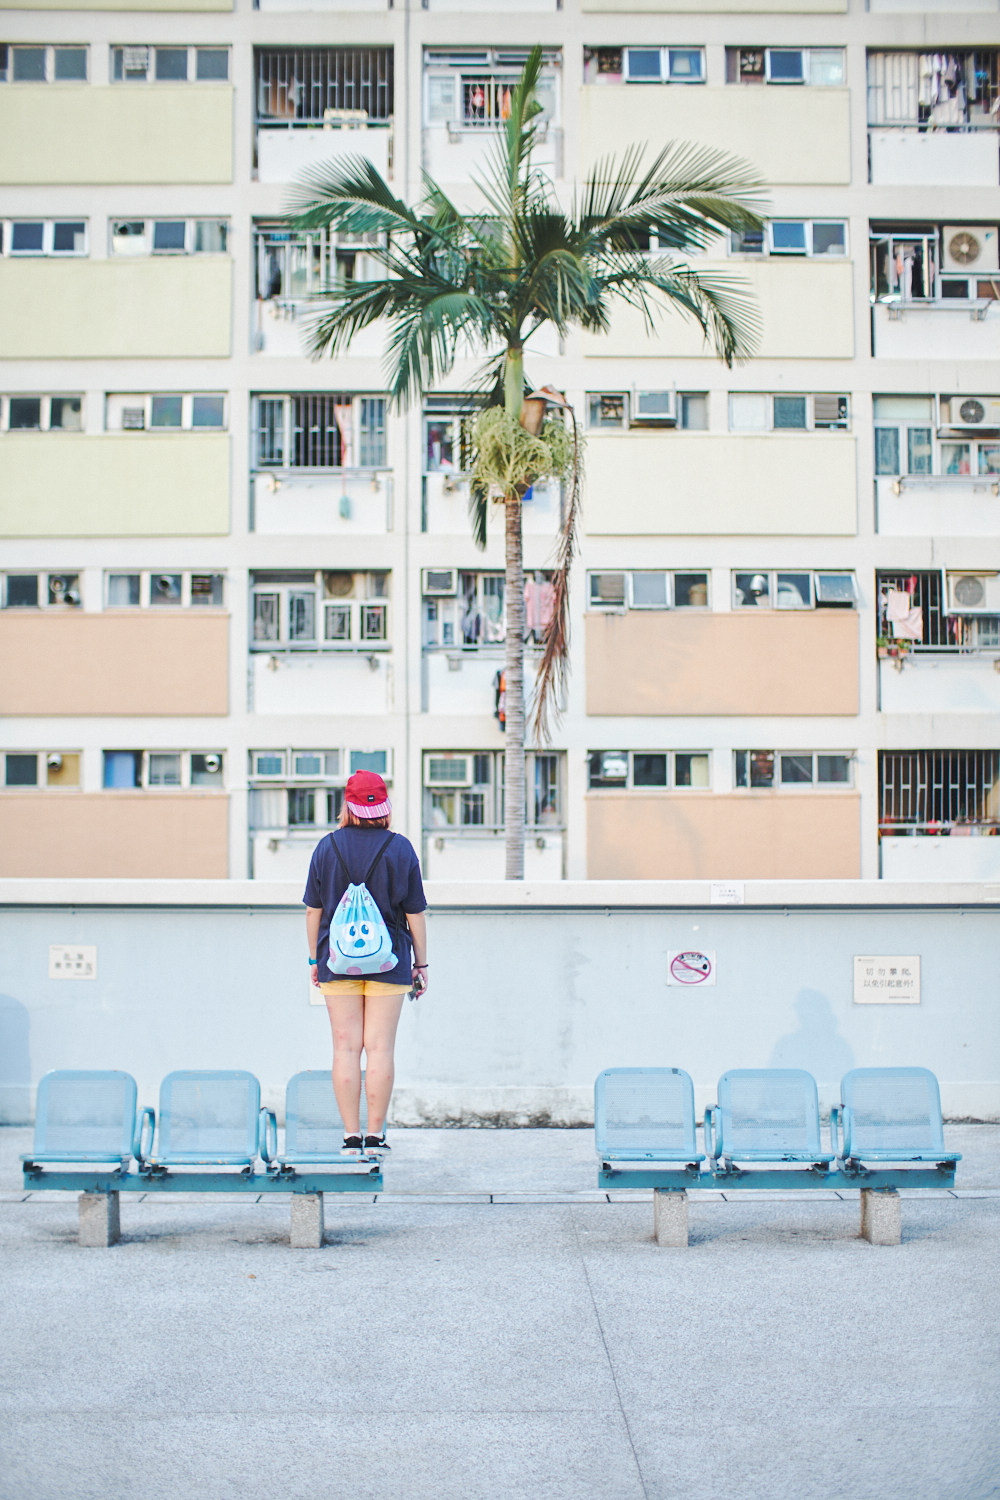 Travel portrait photographer | Choi Hung Estate Kowloon Hong Kong